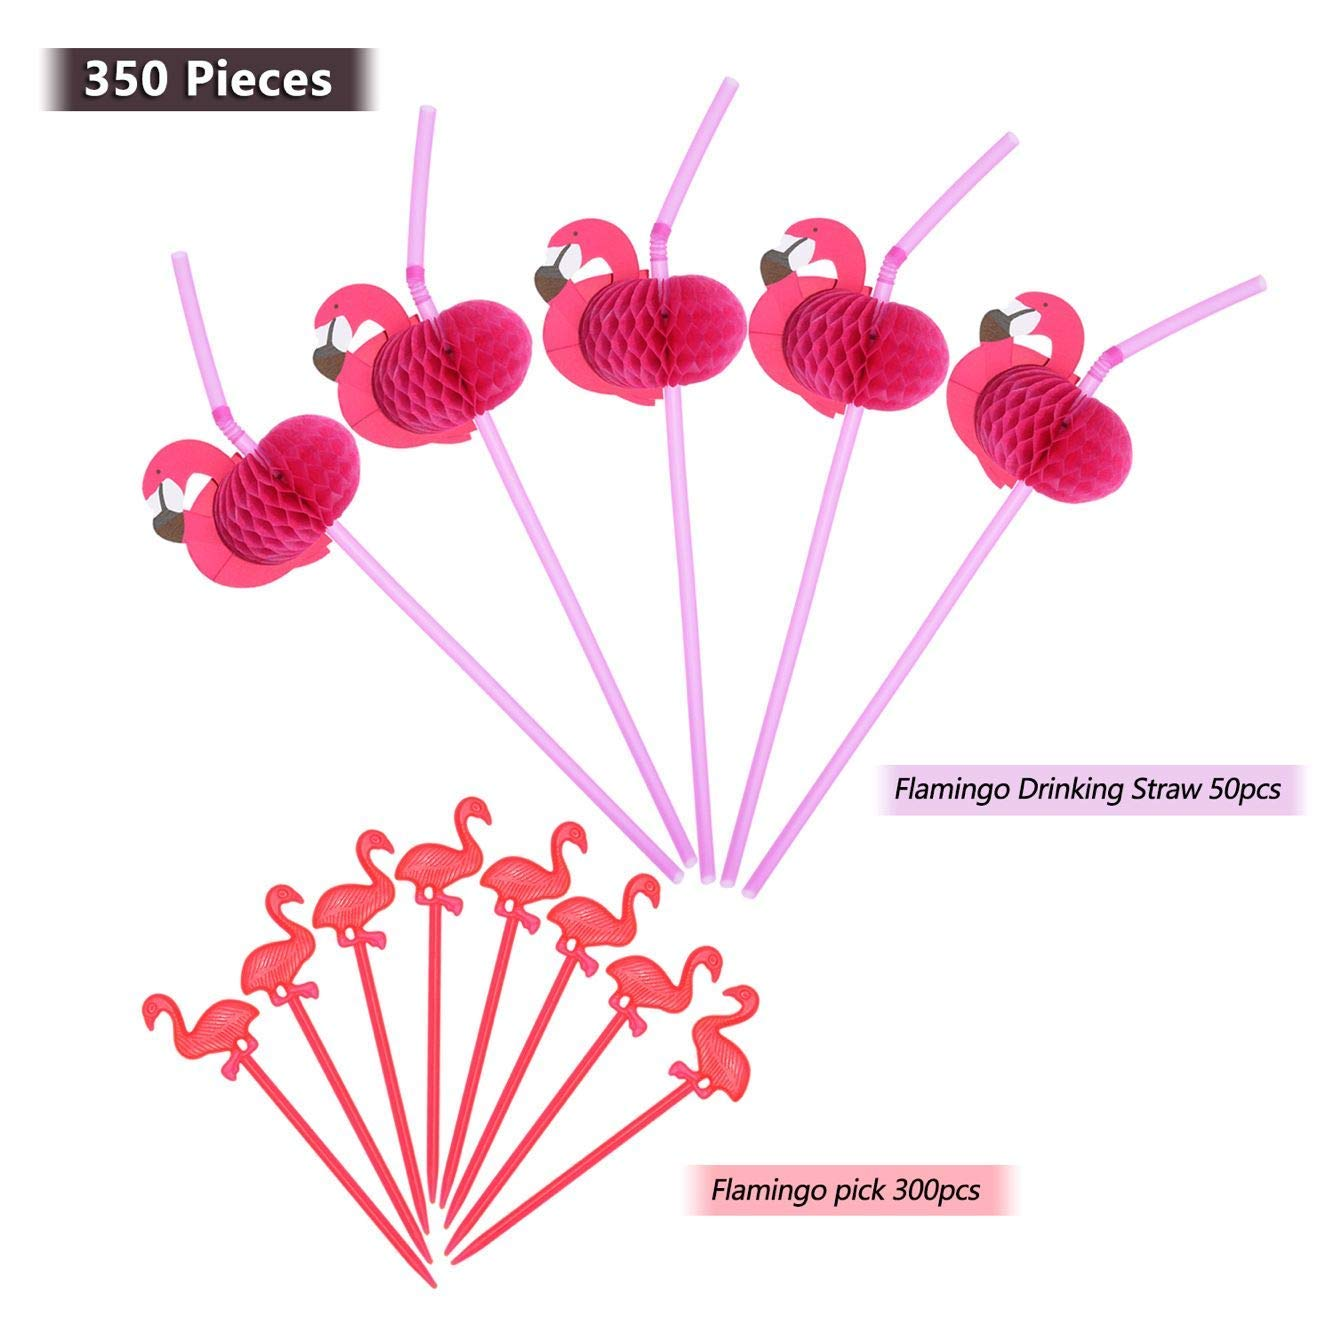 LGDehome 350 Pieces Cute Flamingo Picks Pink Cocktail Picks with Flamingo Drinking Straws Rose Bendable Cocktail Straws for Tropical Party Birthday Wedding Tableware Decoration by LGDehome (Image #1)